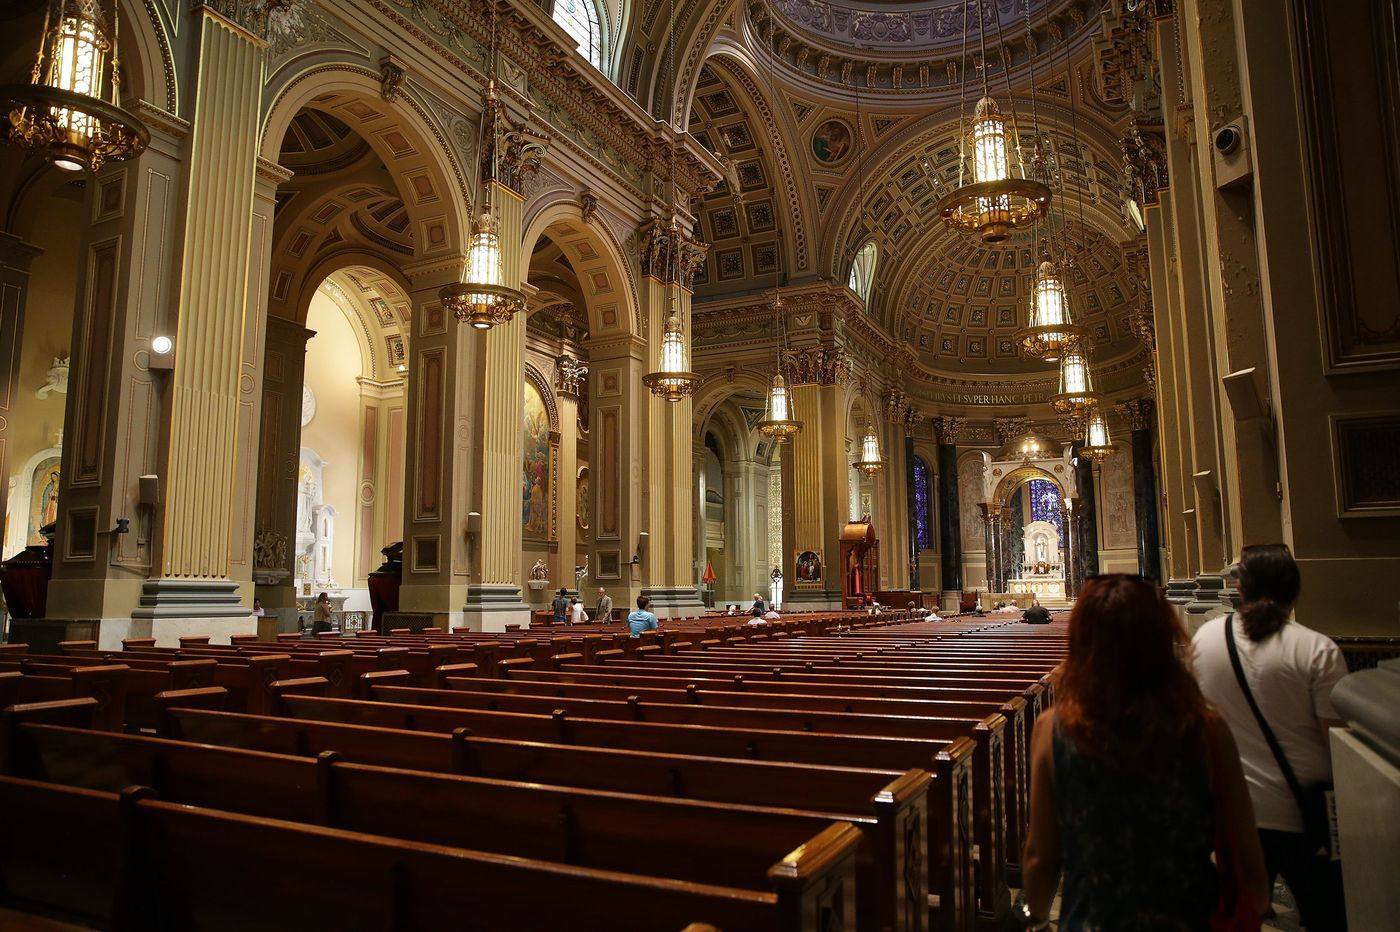 After sex abuse allegations, archdiocese takes action on 3 Philly priests